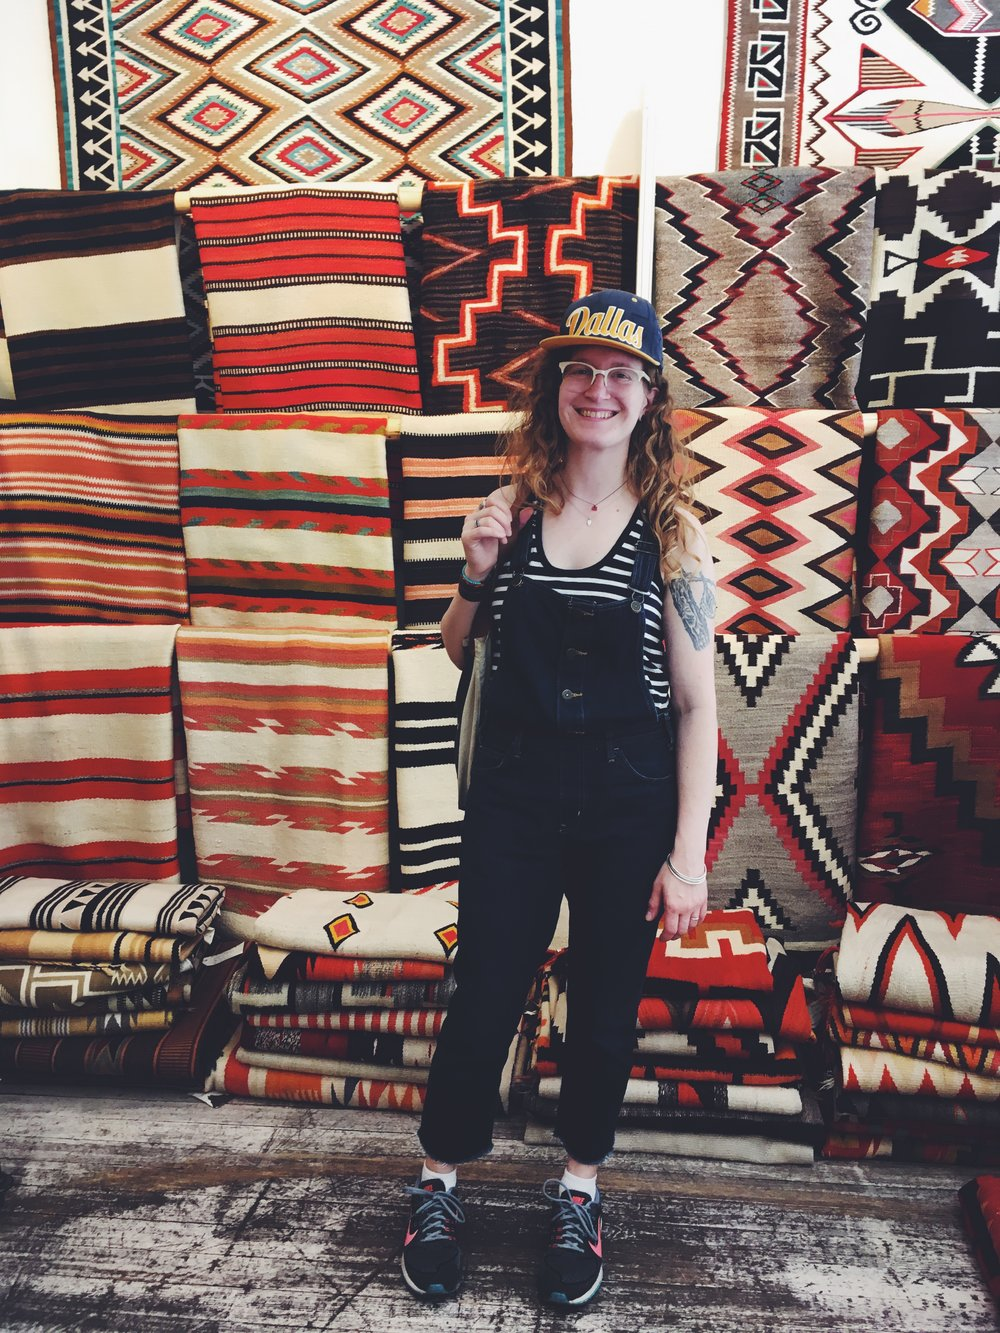 Marian  in the rug room at  Shiprock